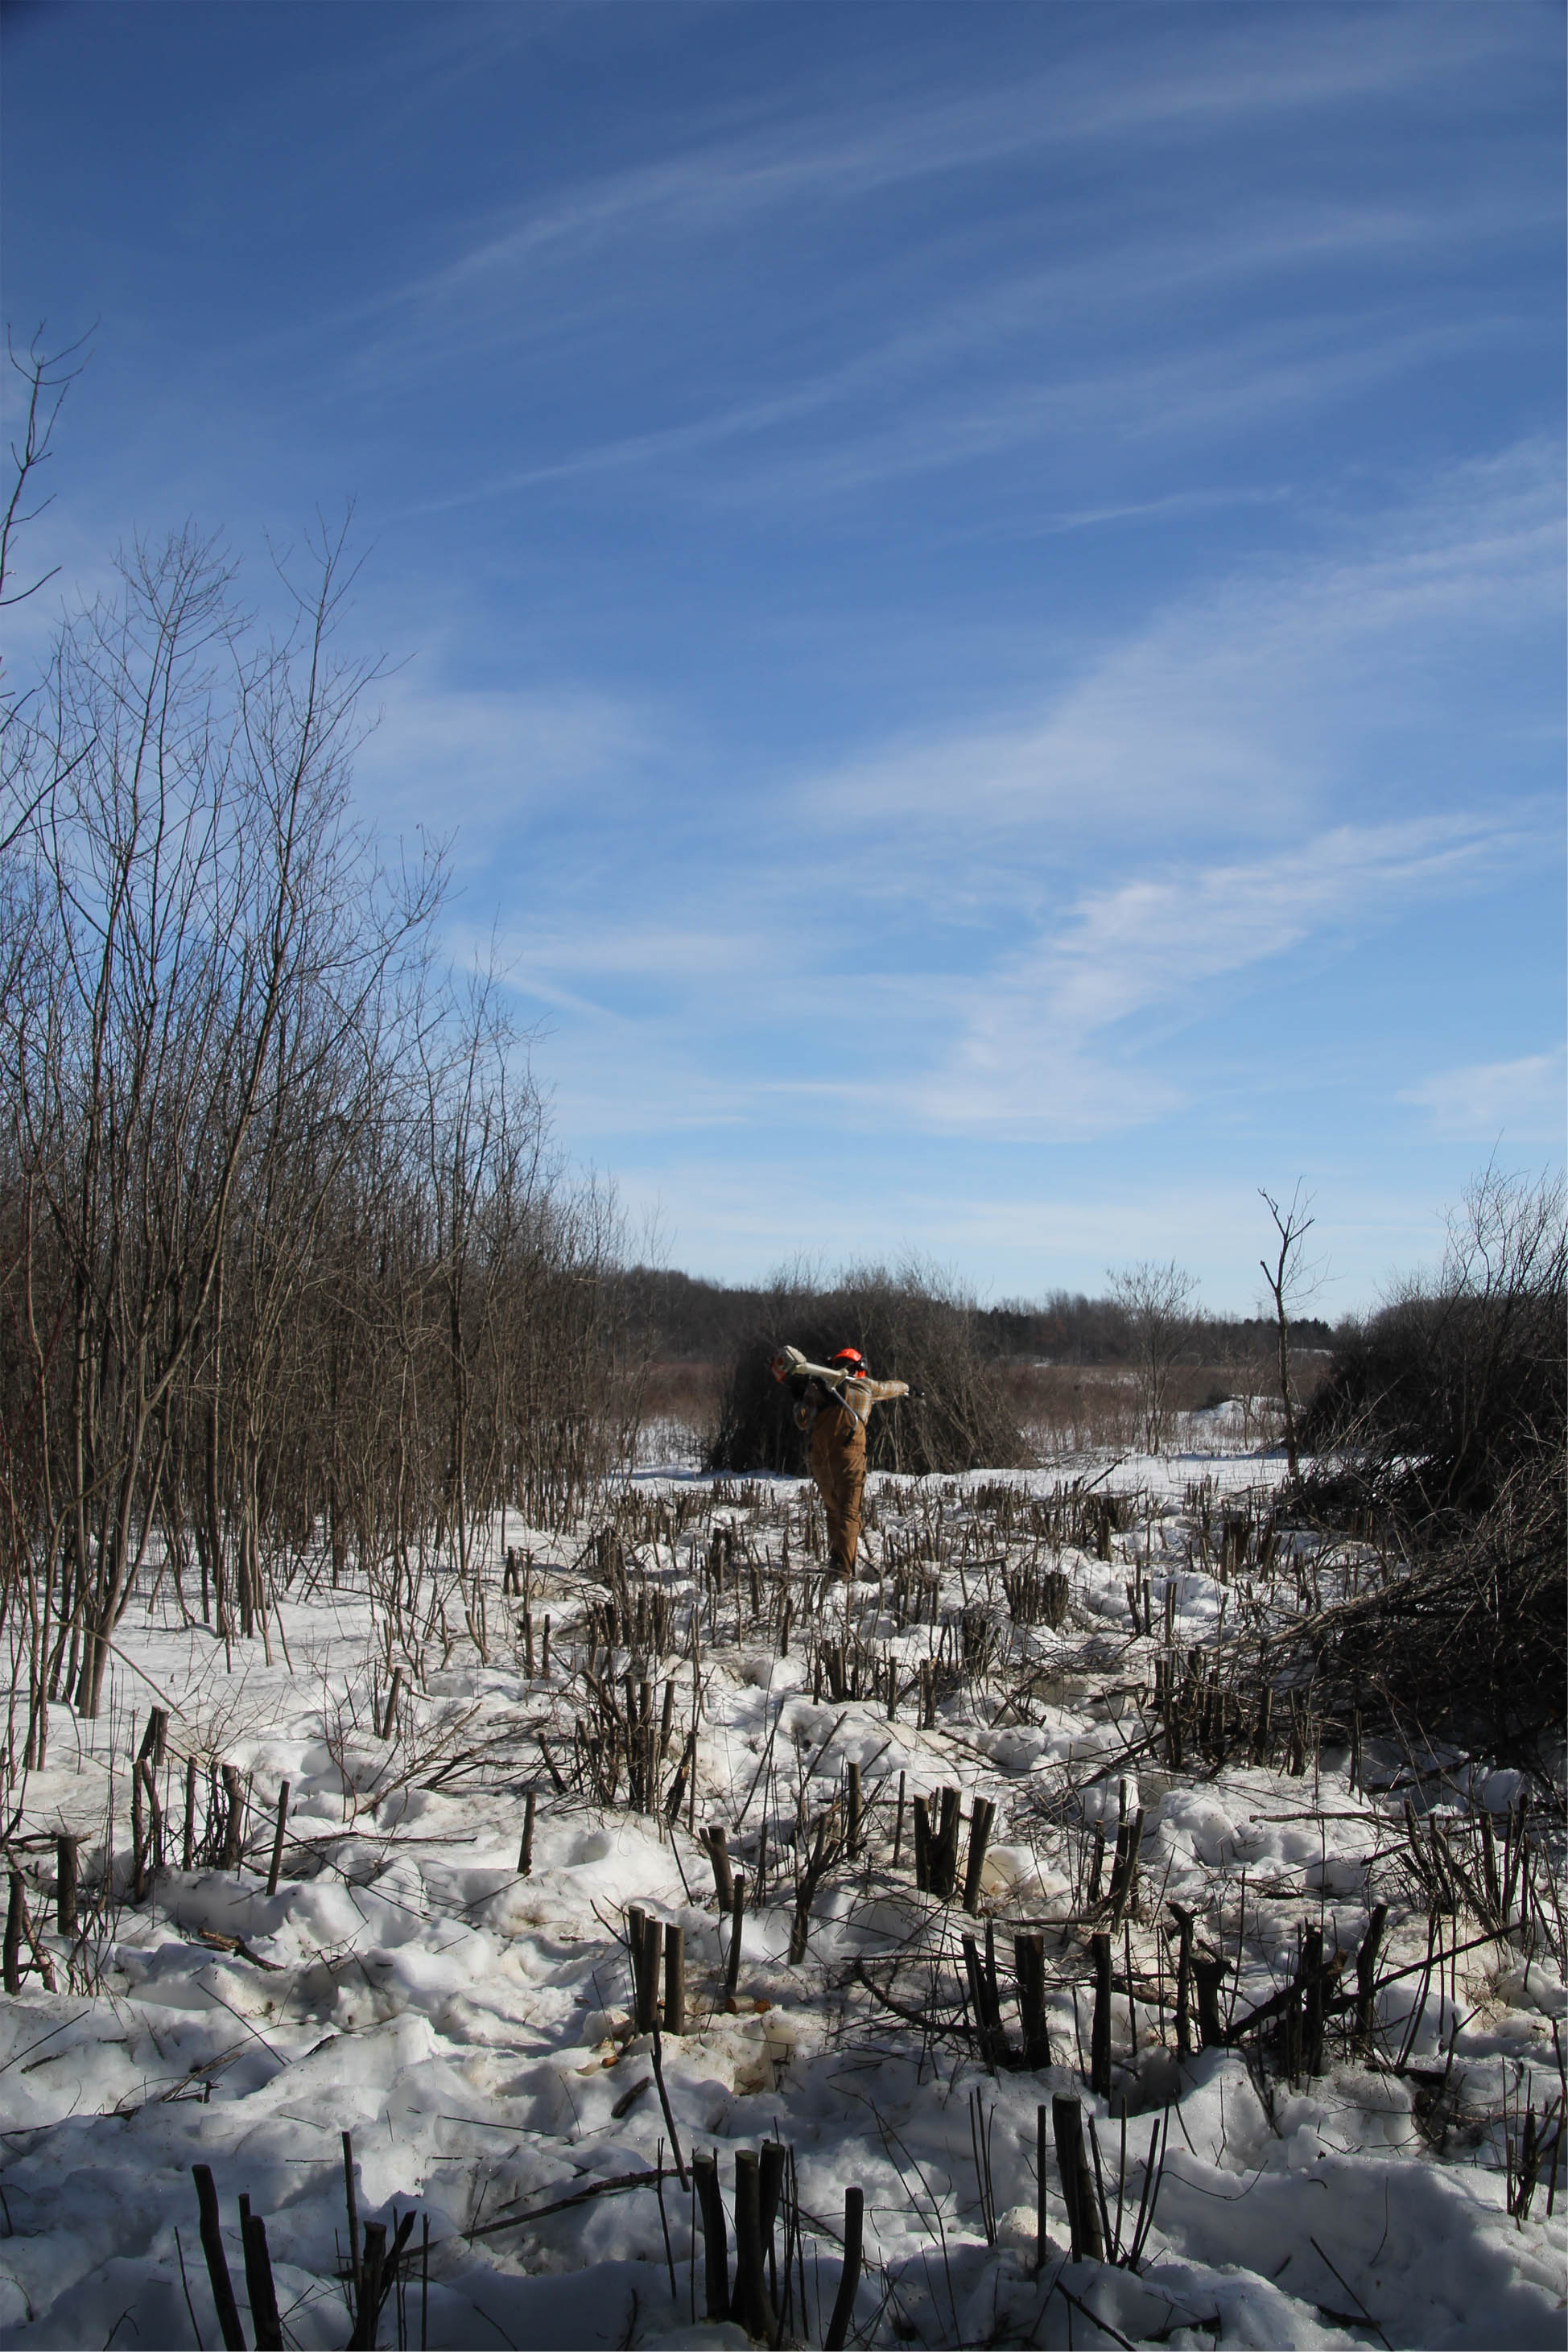 John Lerdal, a Riparian Restoration Assistant, carrying his brushcutter during a day of cutting and treating glossy buckthorn (Frangula alnus).